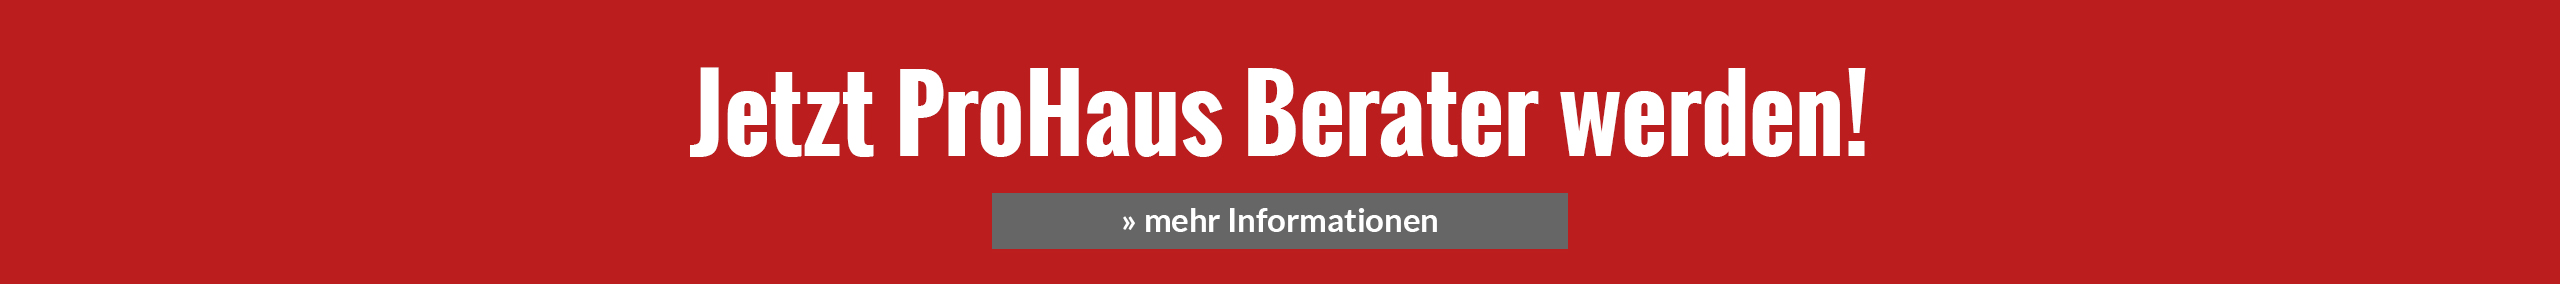 ProHaus Berater Informationen